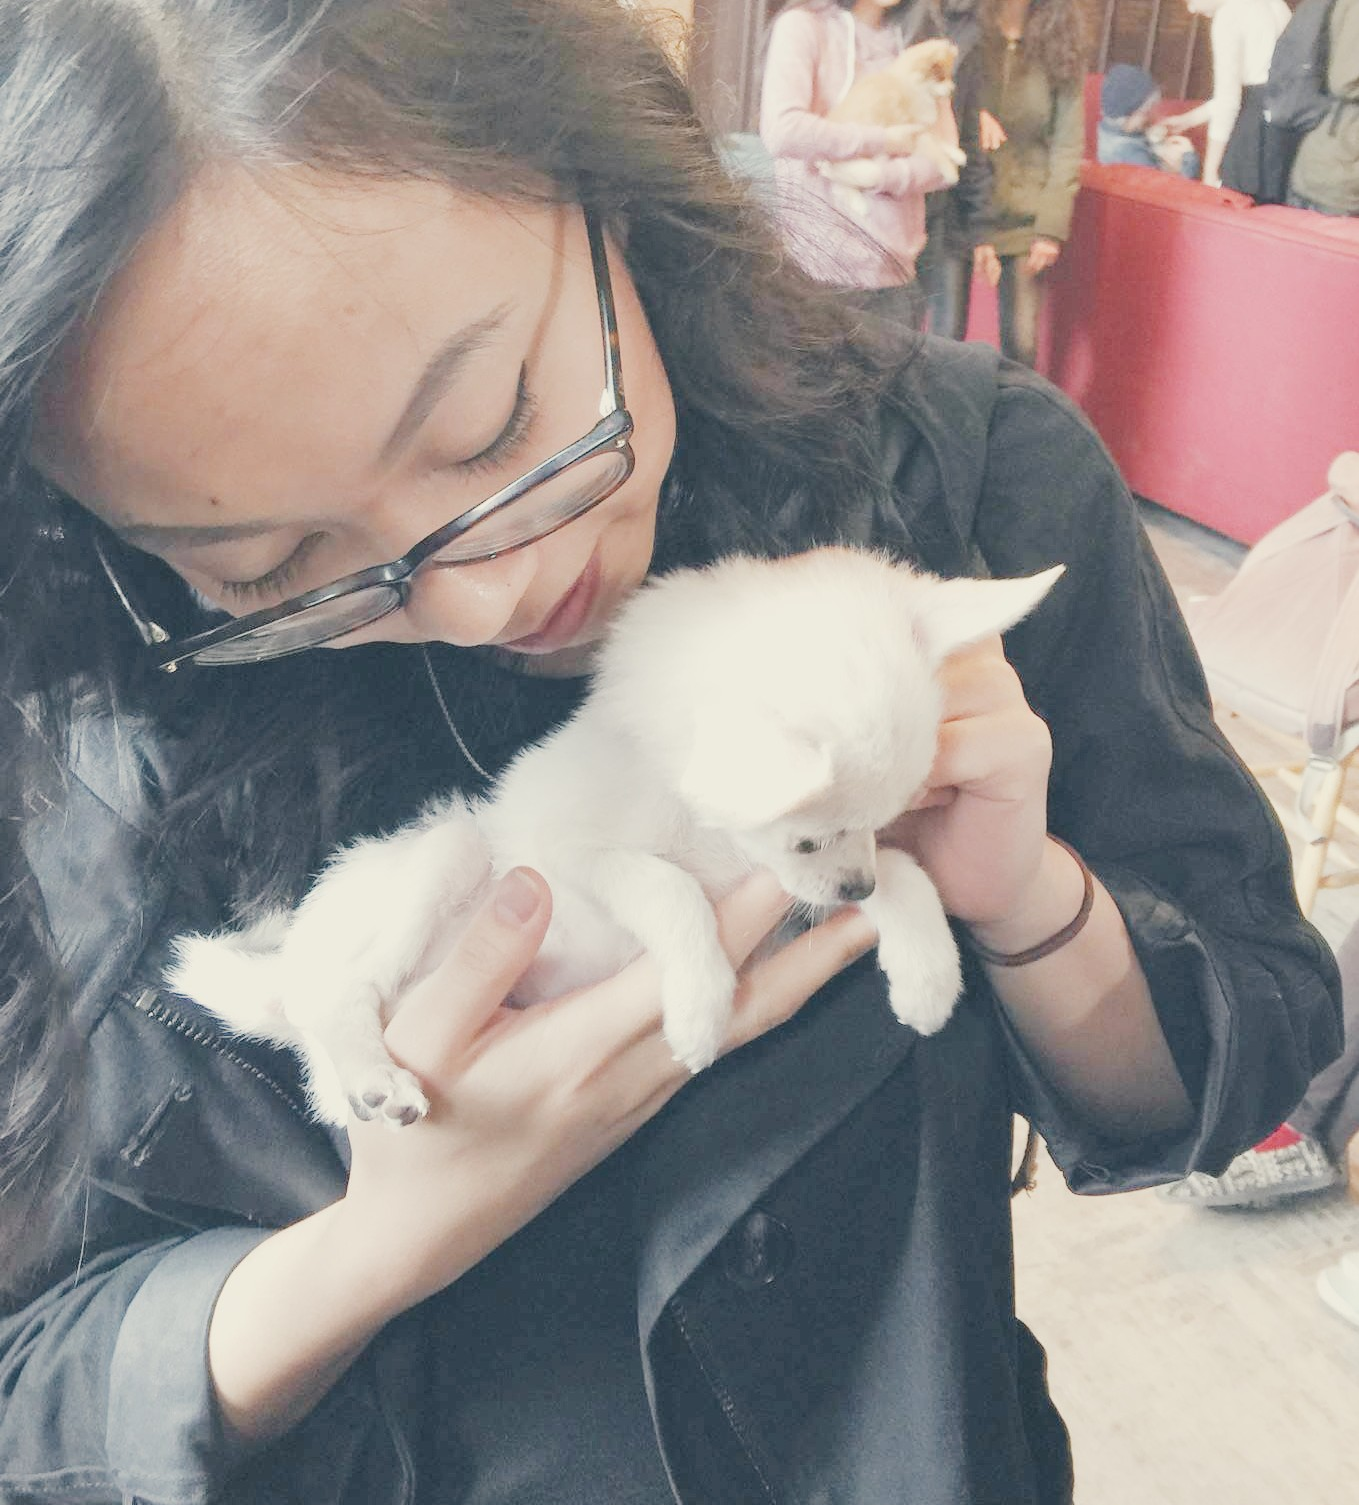 Me holding a fluffy little pup during the UC Exam Jam in the JCR.